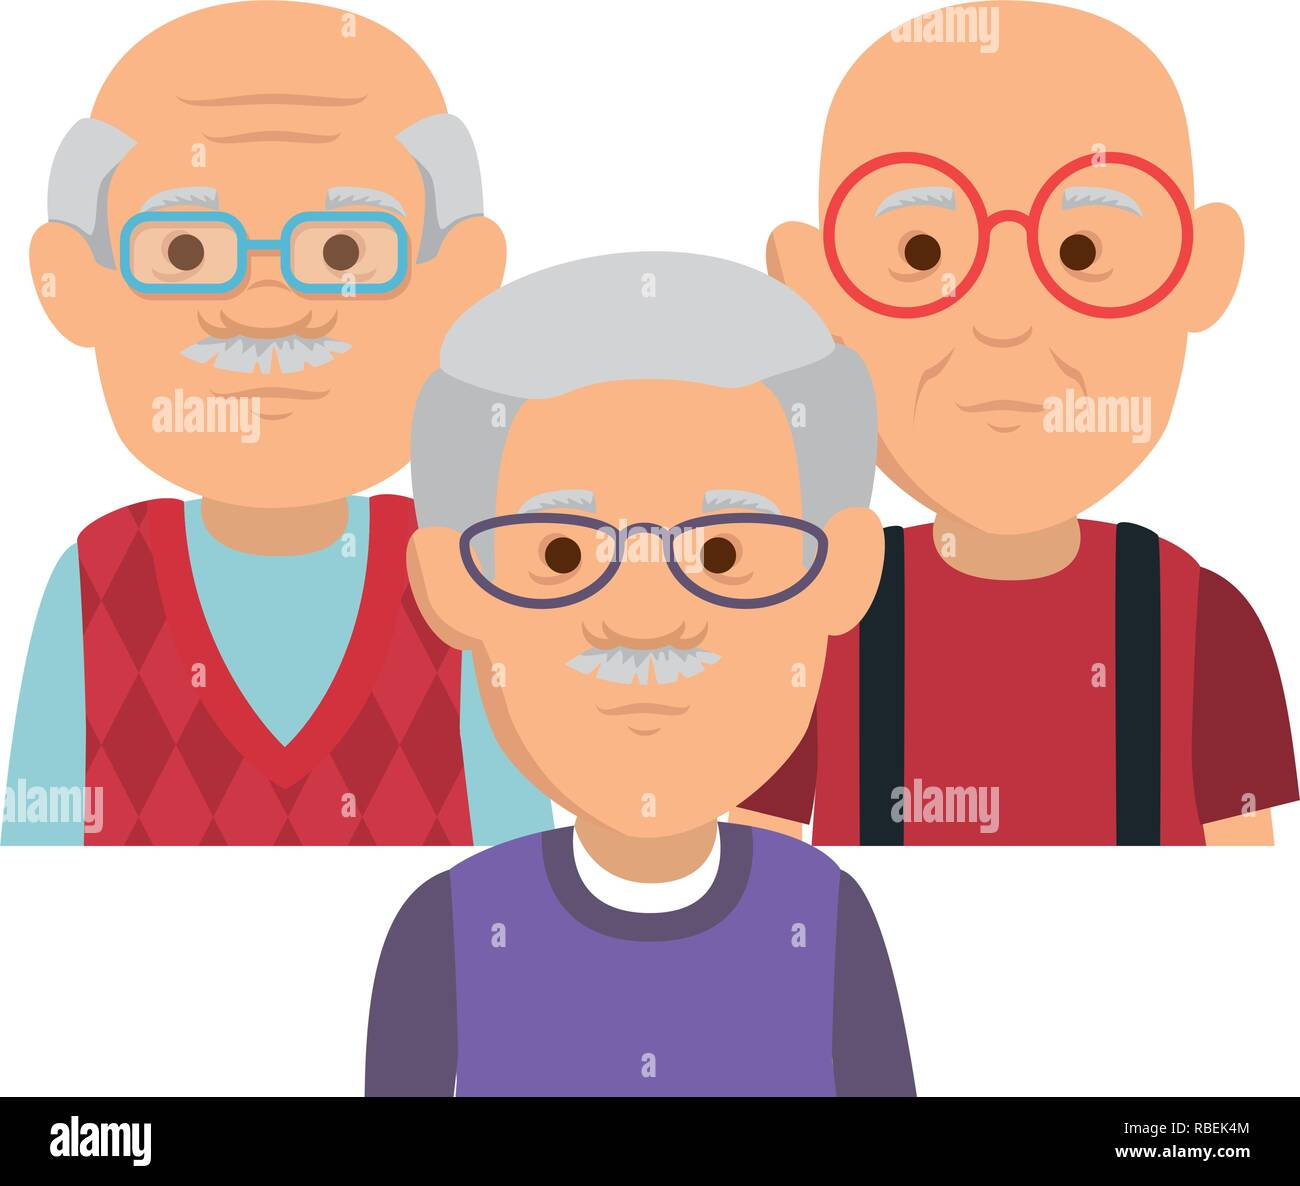 cute grandfathers avatars characters - Stock Vector